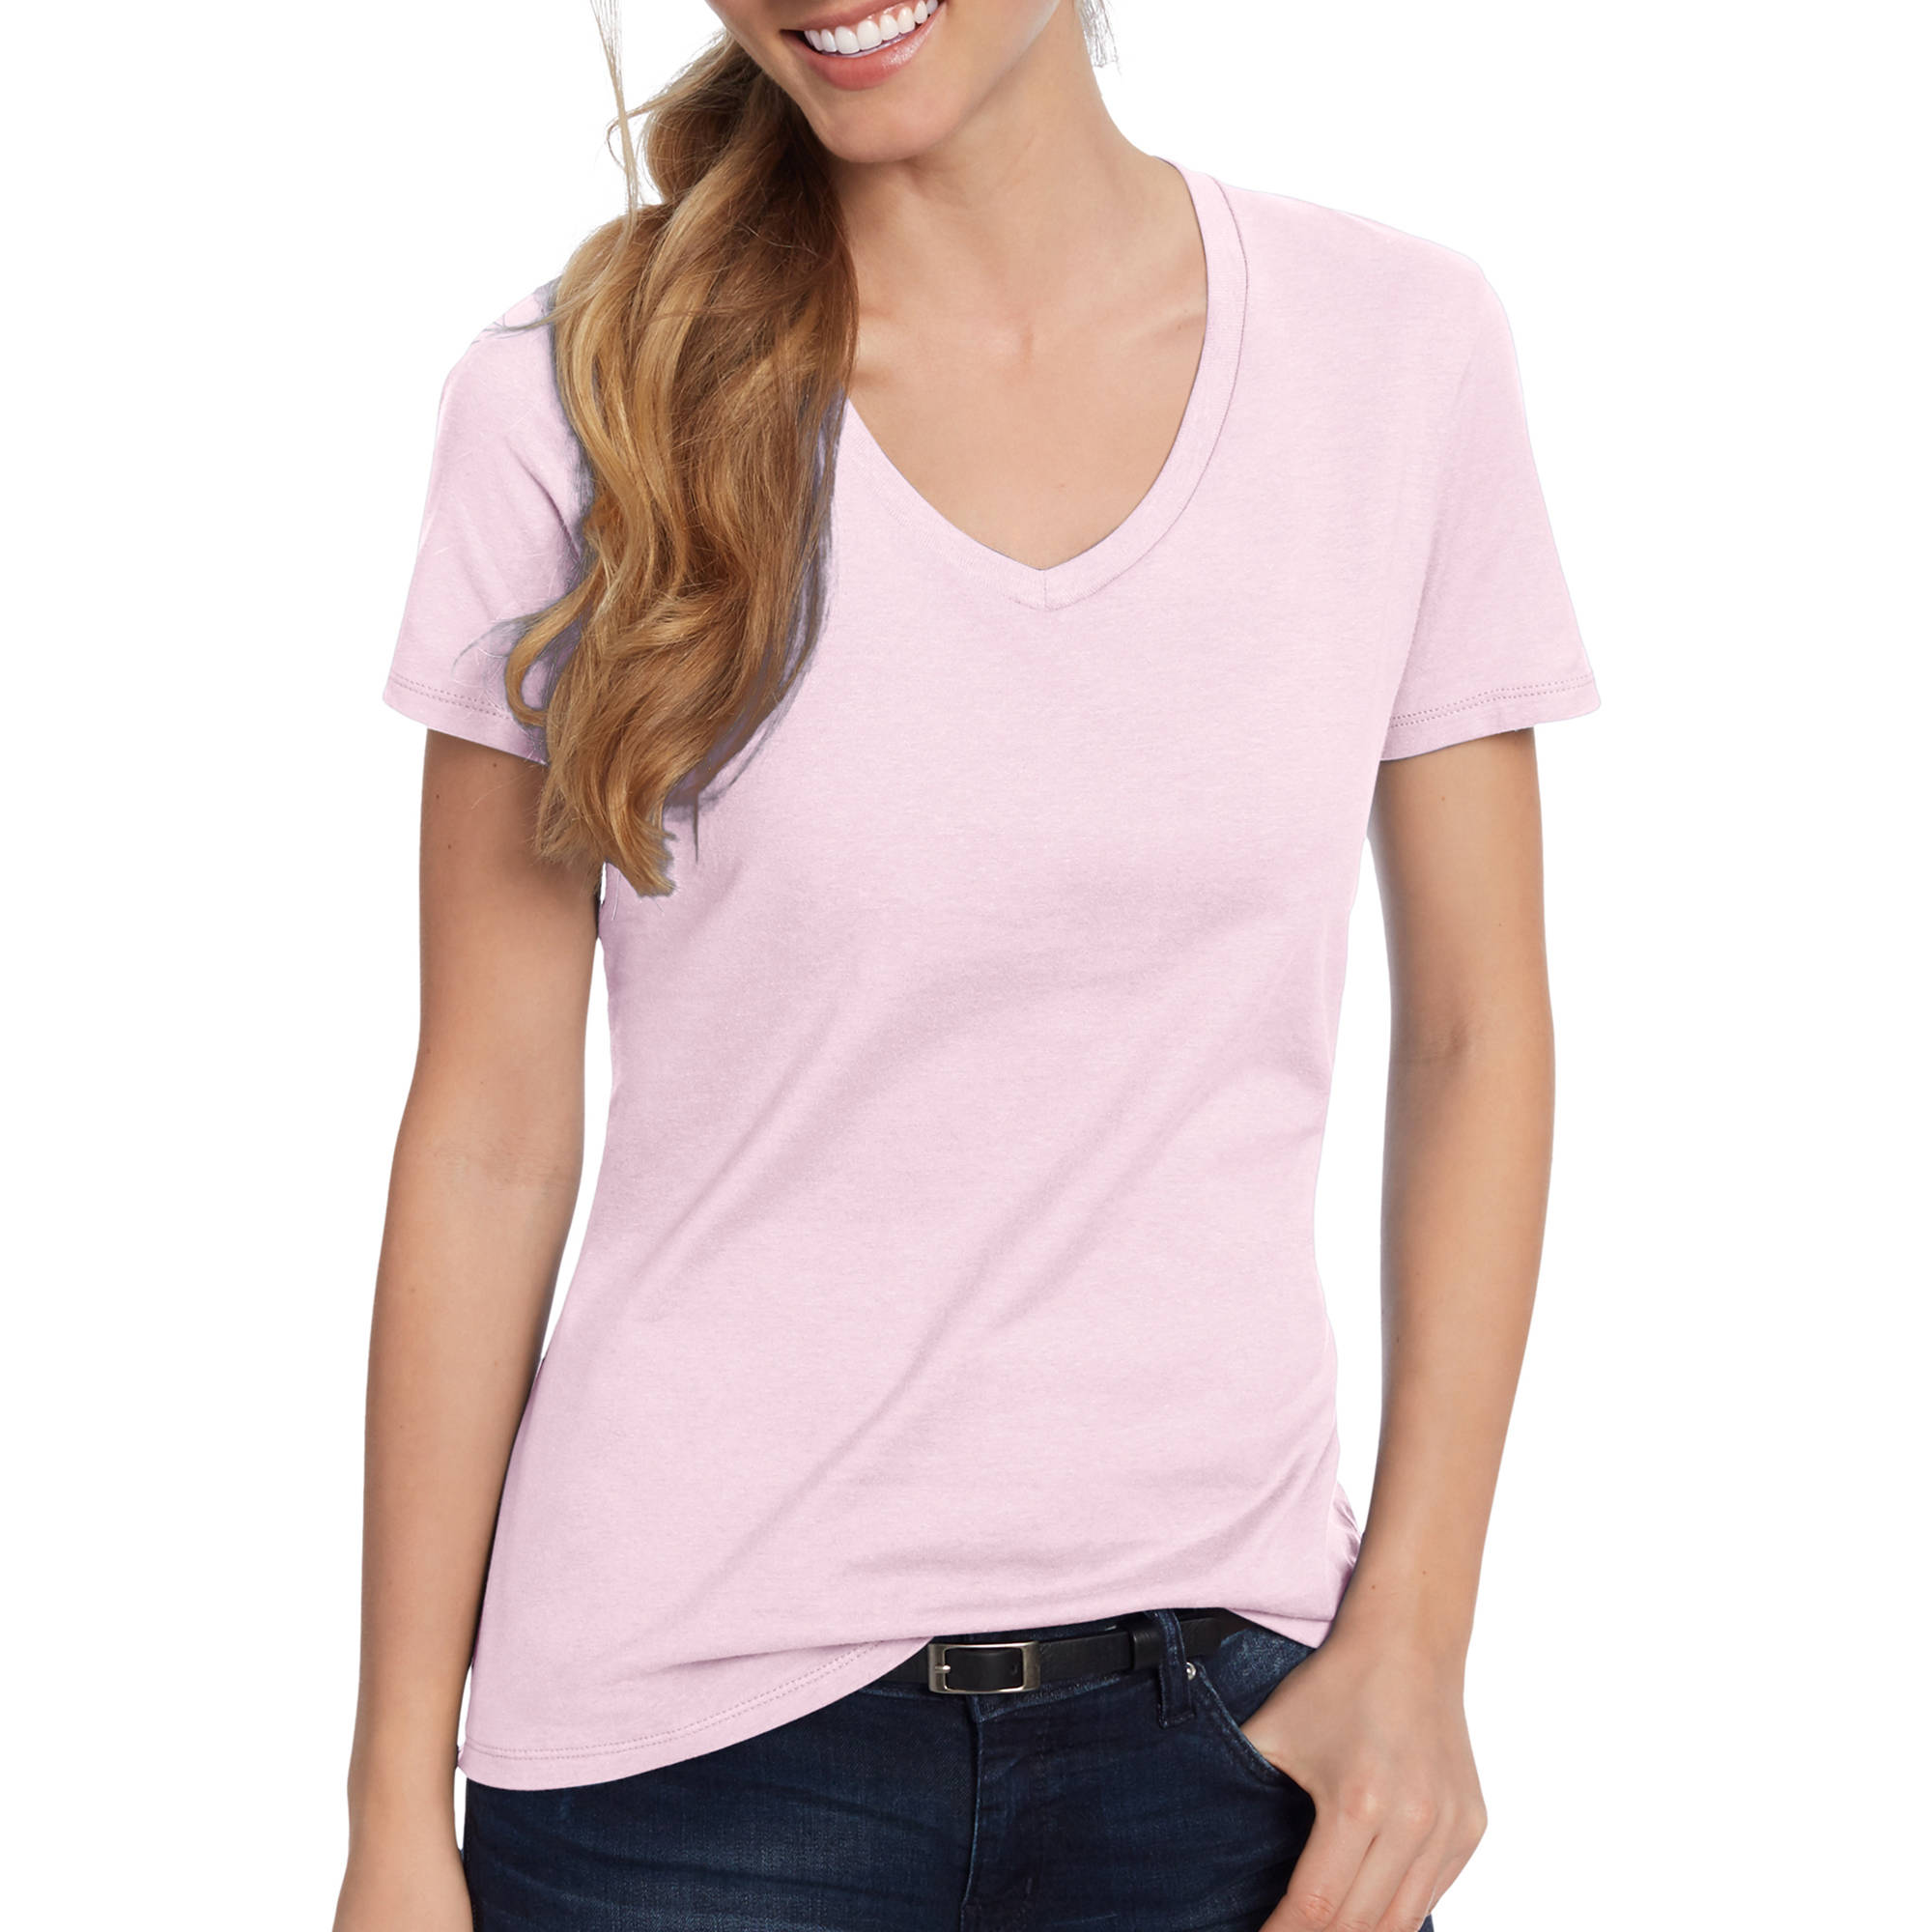 Hanes Women's Lightweight Short Sleeve V-neck T-Shirt